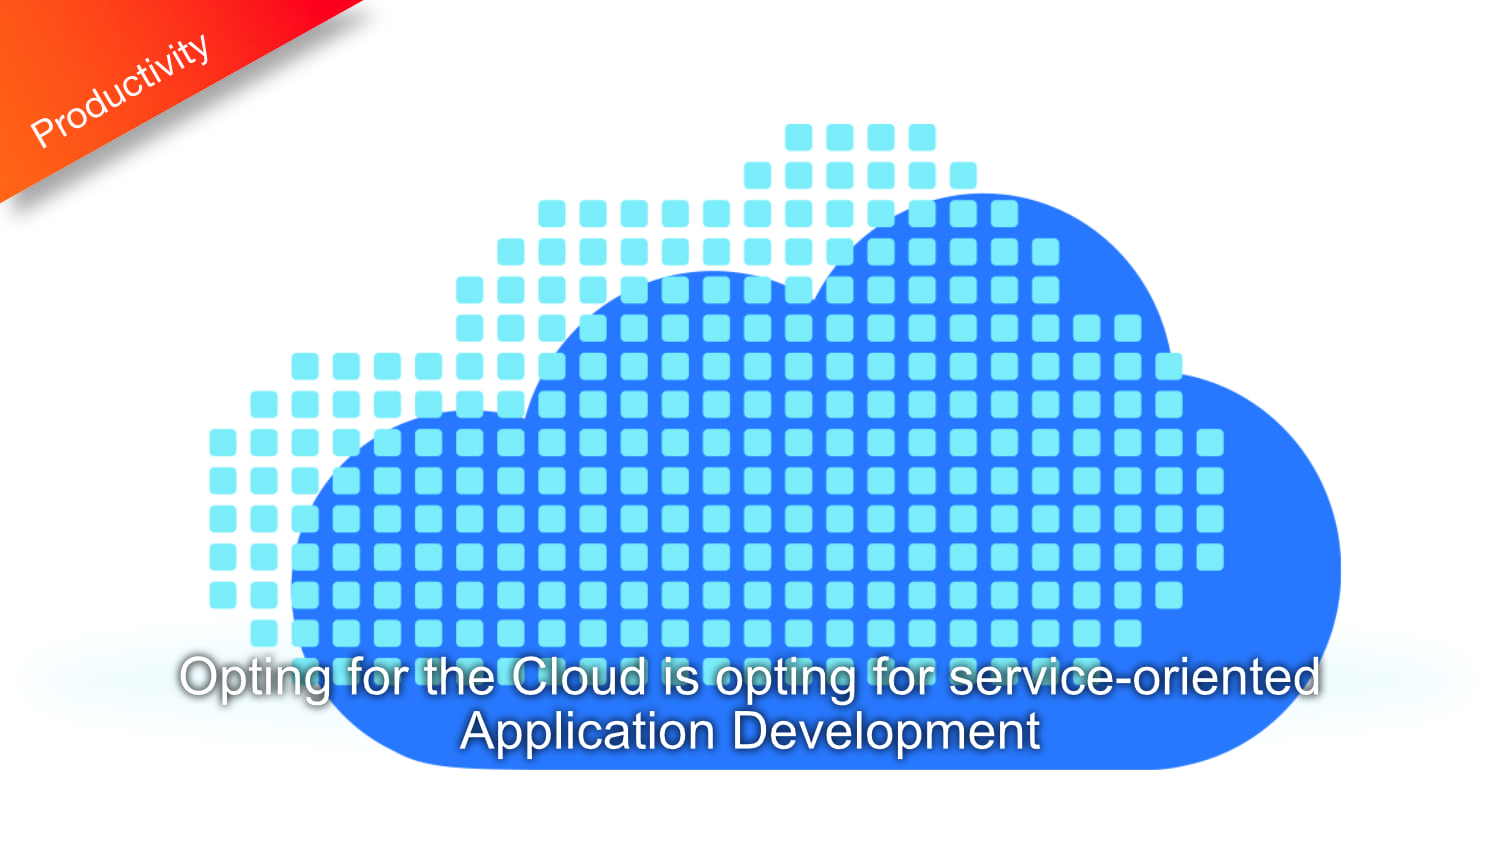 service-oriented application development